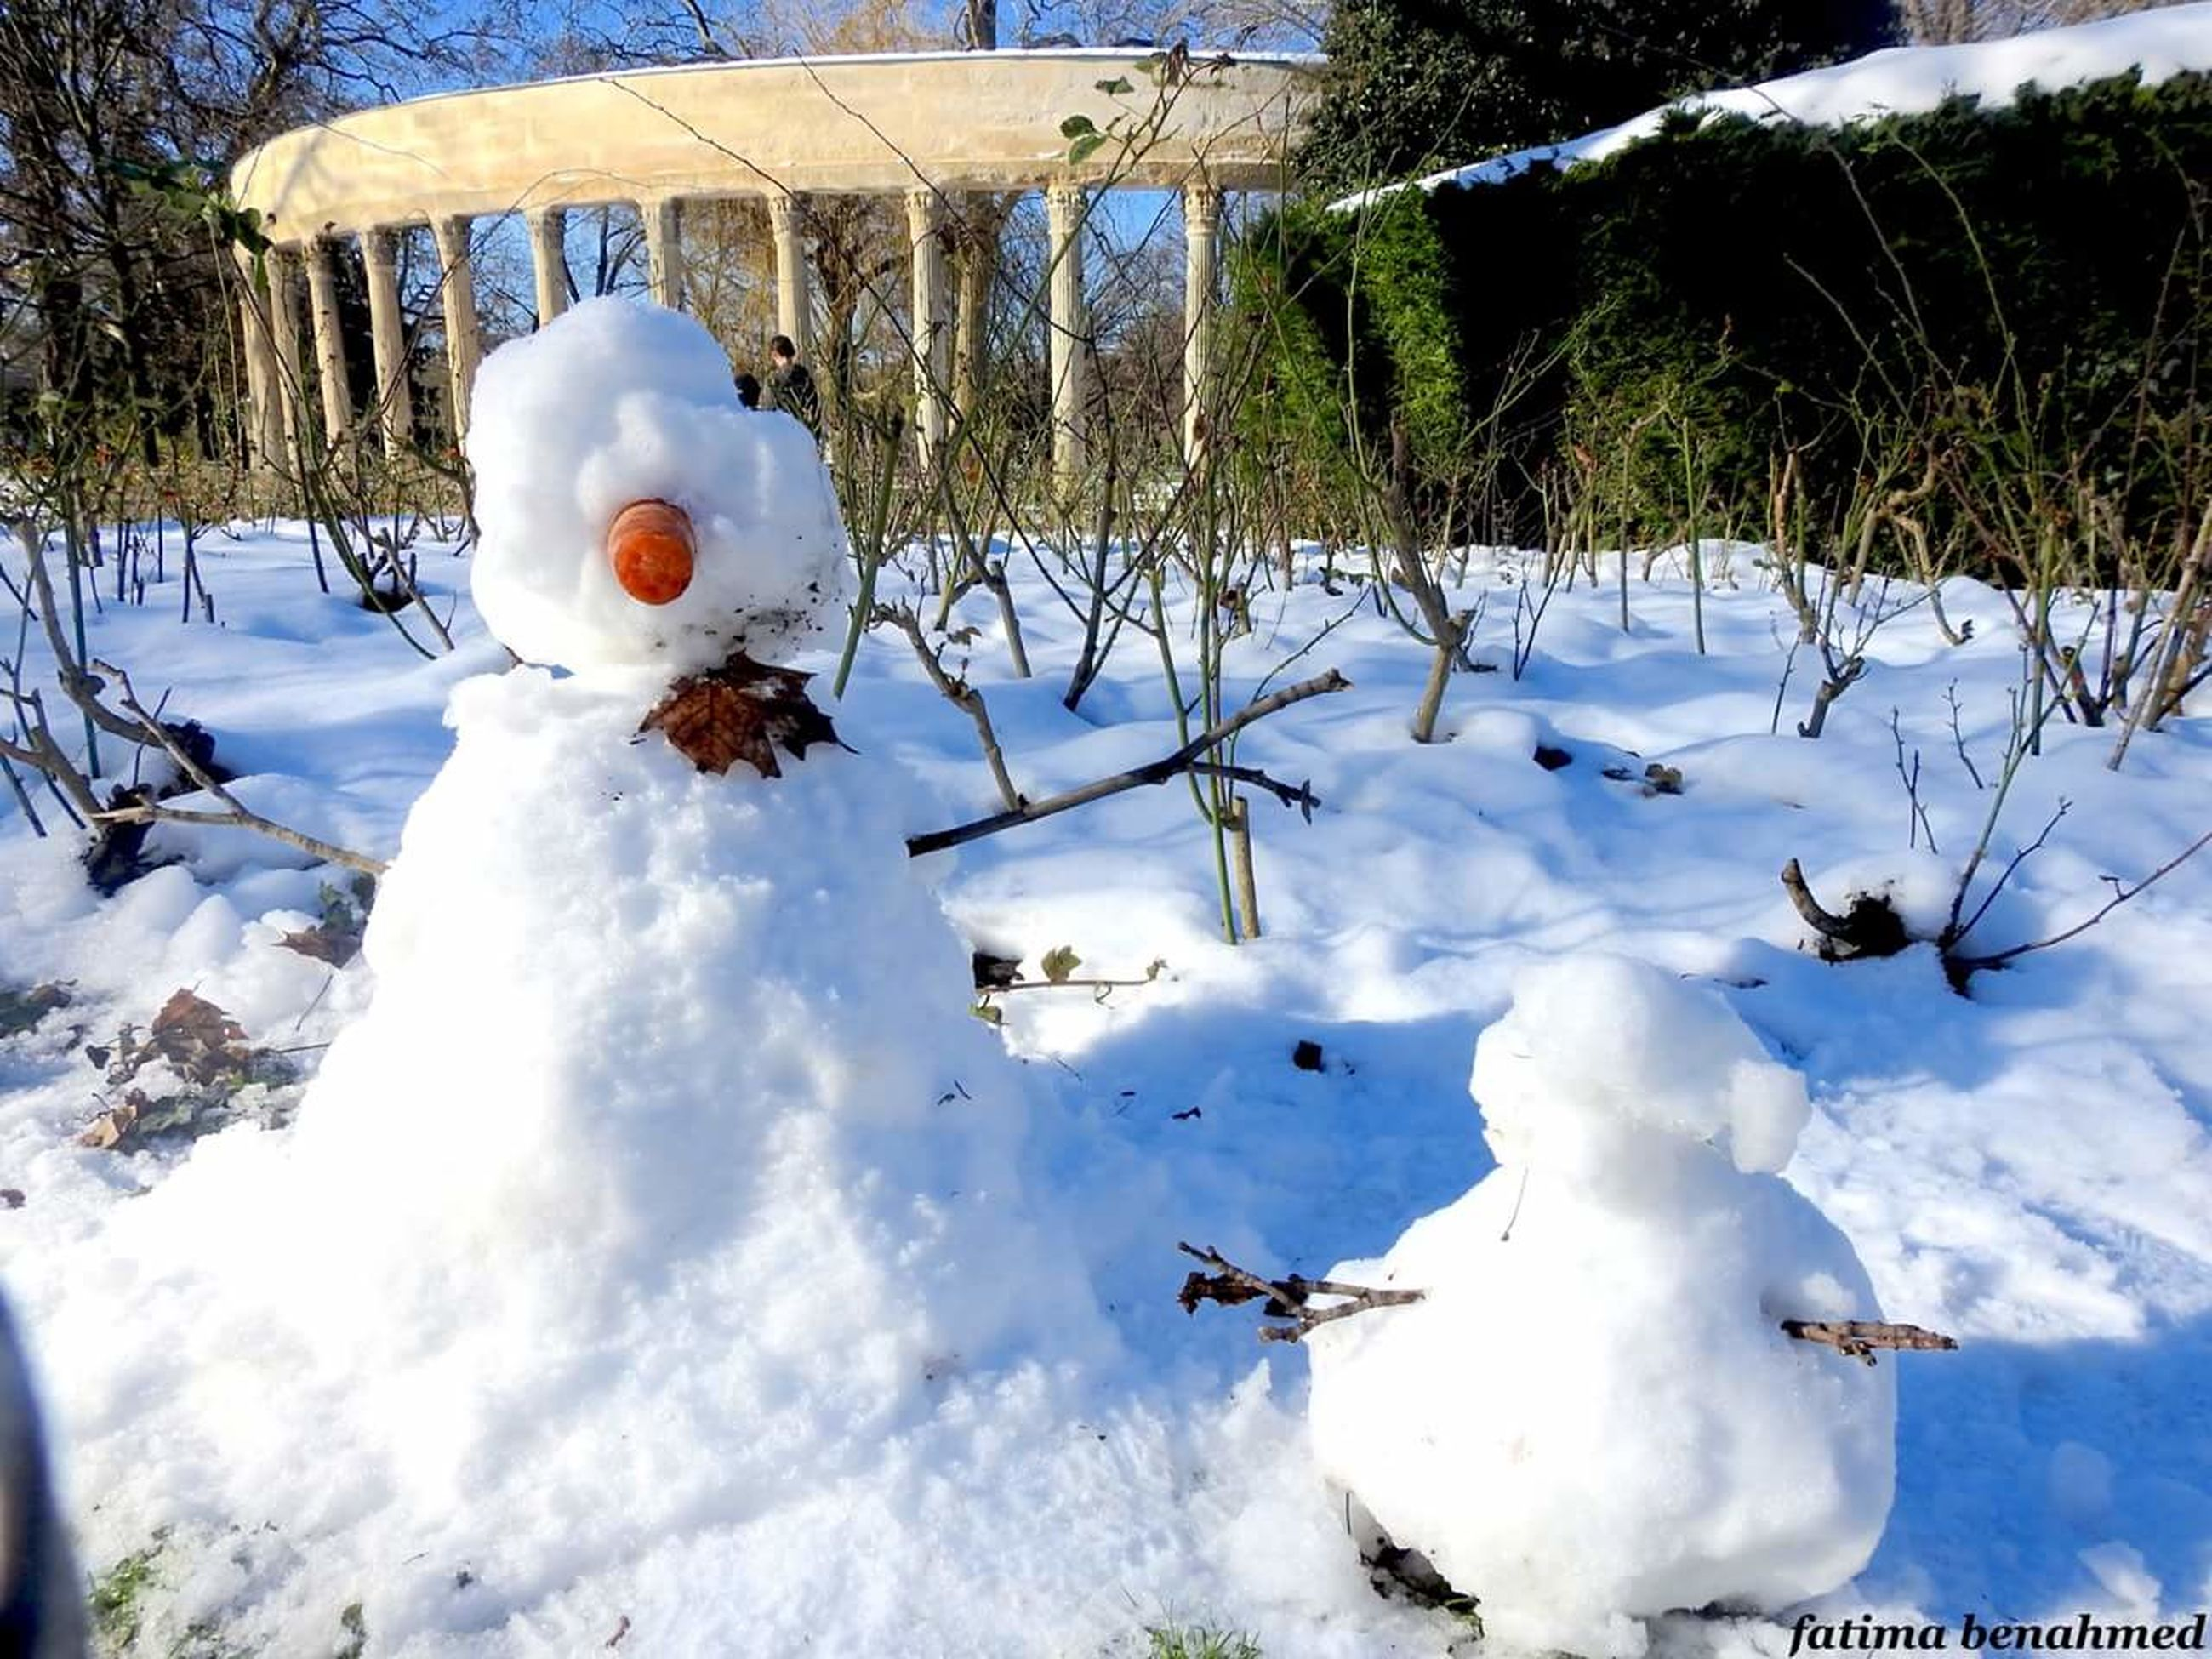 snow, cold temperature, winter, white color, nature, field, day, outdoors, growth, no people, beauty in nature, snowman, tree